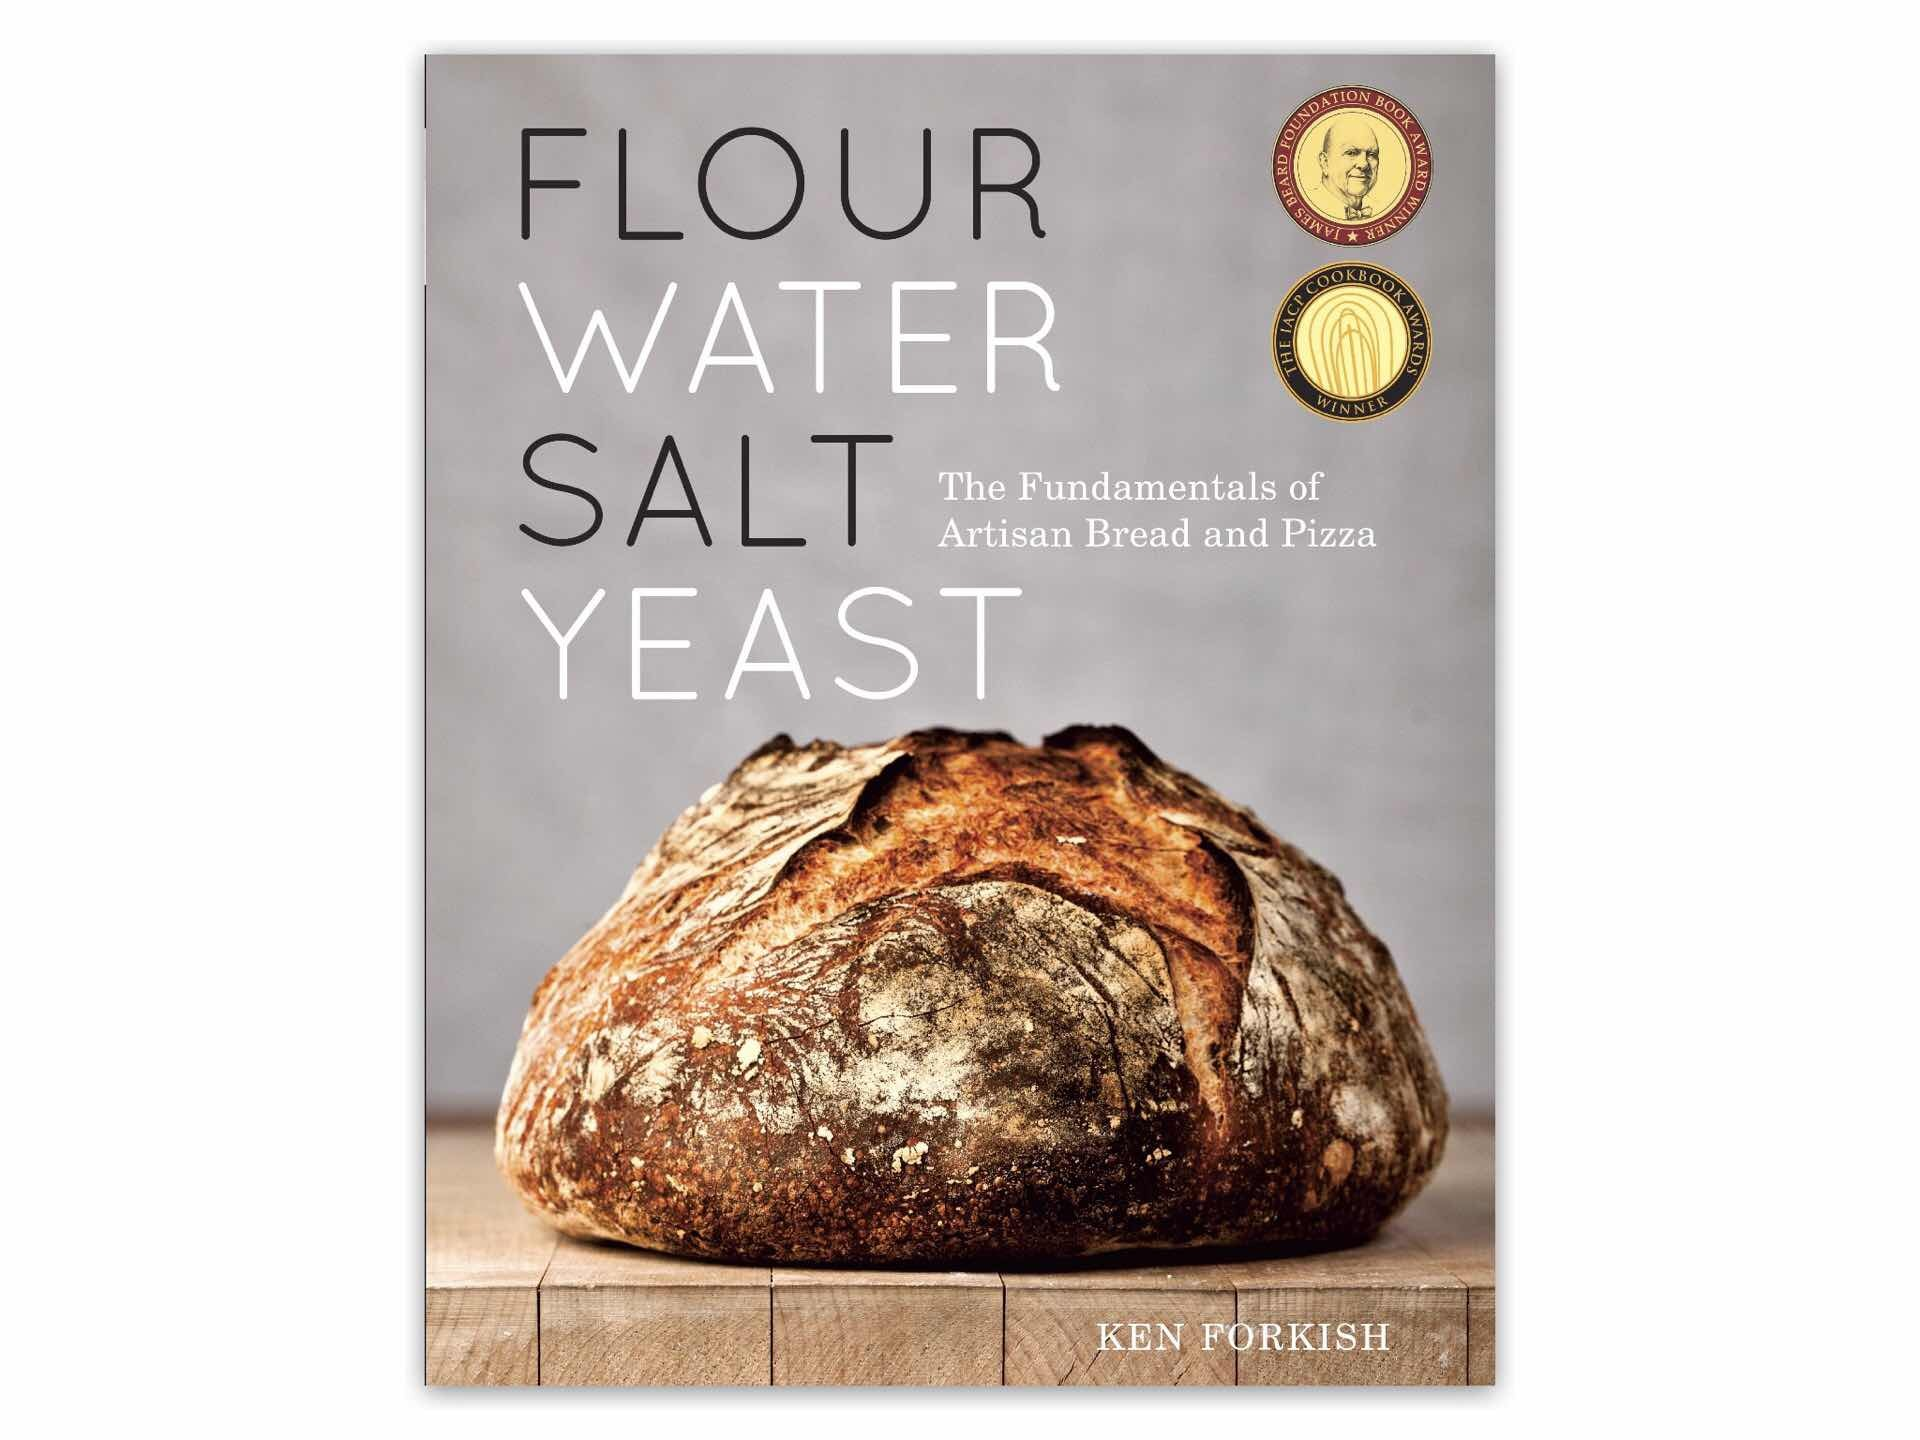 Flour Water Salt Yeast by Ken Forkish. ($16)